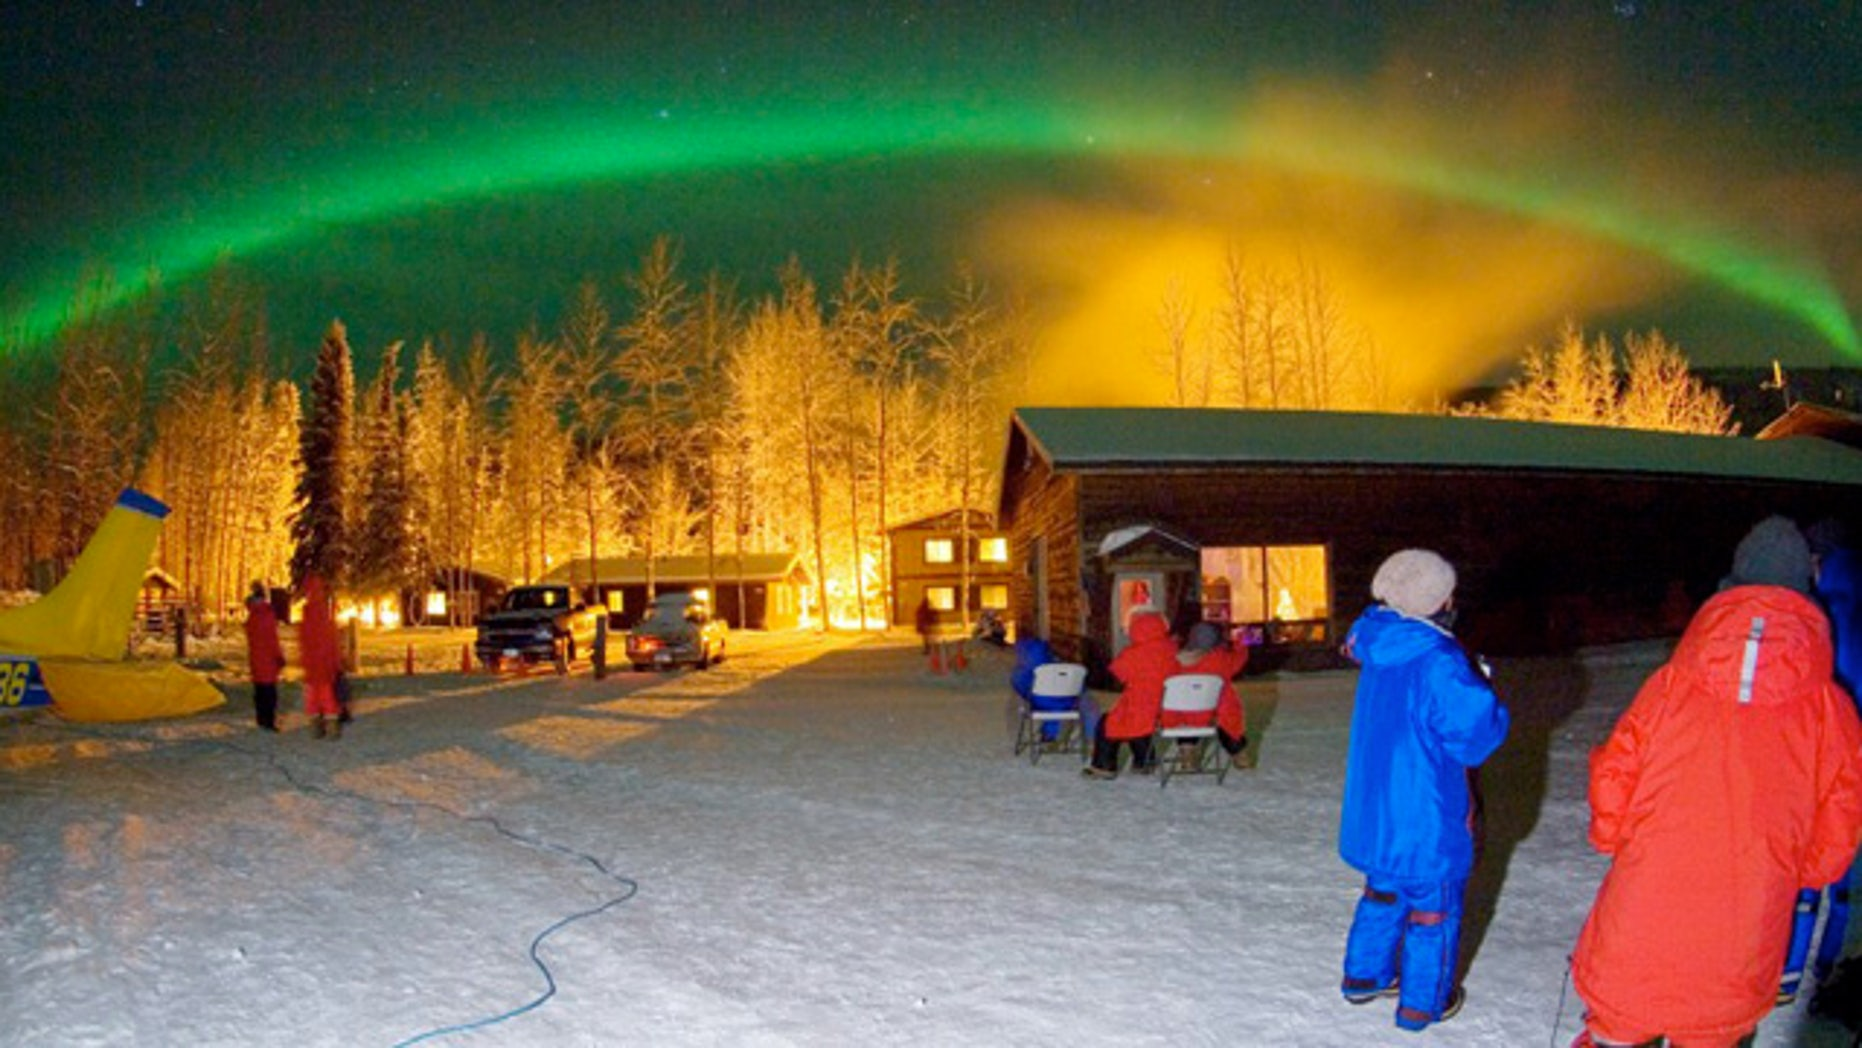 Thanks to its proximity to the North Pole, and the lack of urban light pollution, Chena Hot Springs Resort is one of the best places to take in the Aurora Borealis.